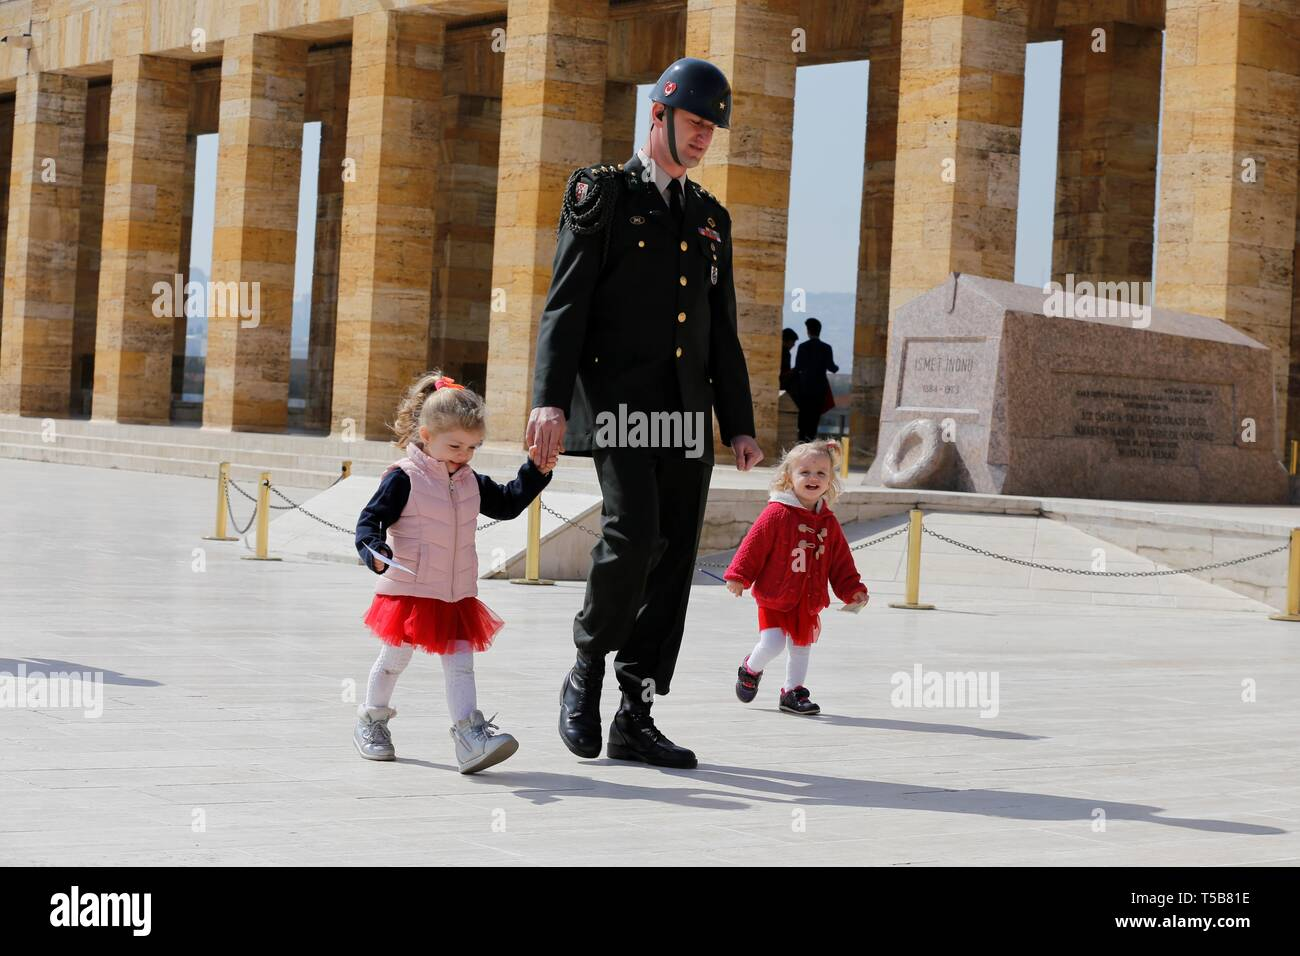 (190423) -- ANKARA, April 23, 2019 (Xinhua) -- Turkish children are seen accompanied by a soldier in front of Ataturk Mausoleum to celebrate the 99th National Sovereignty and Children's Day in Ankara, Turkey, April 23, 2019. (Xinhua/Qin Yanyang) - Stock Image